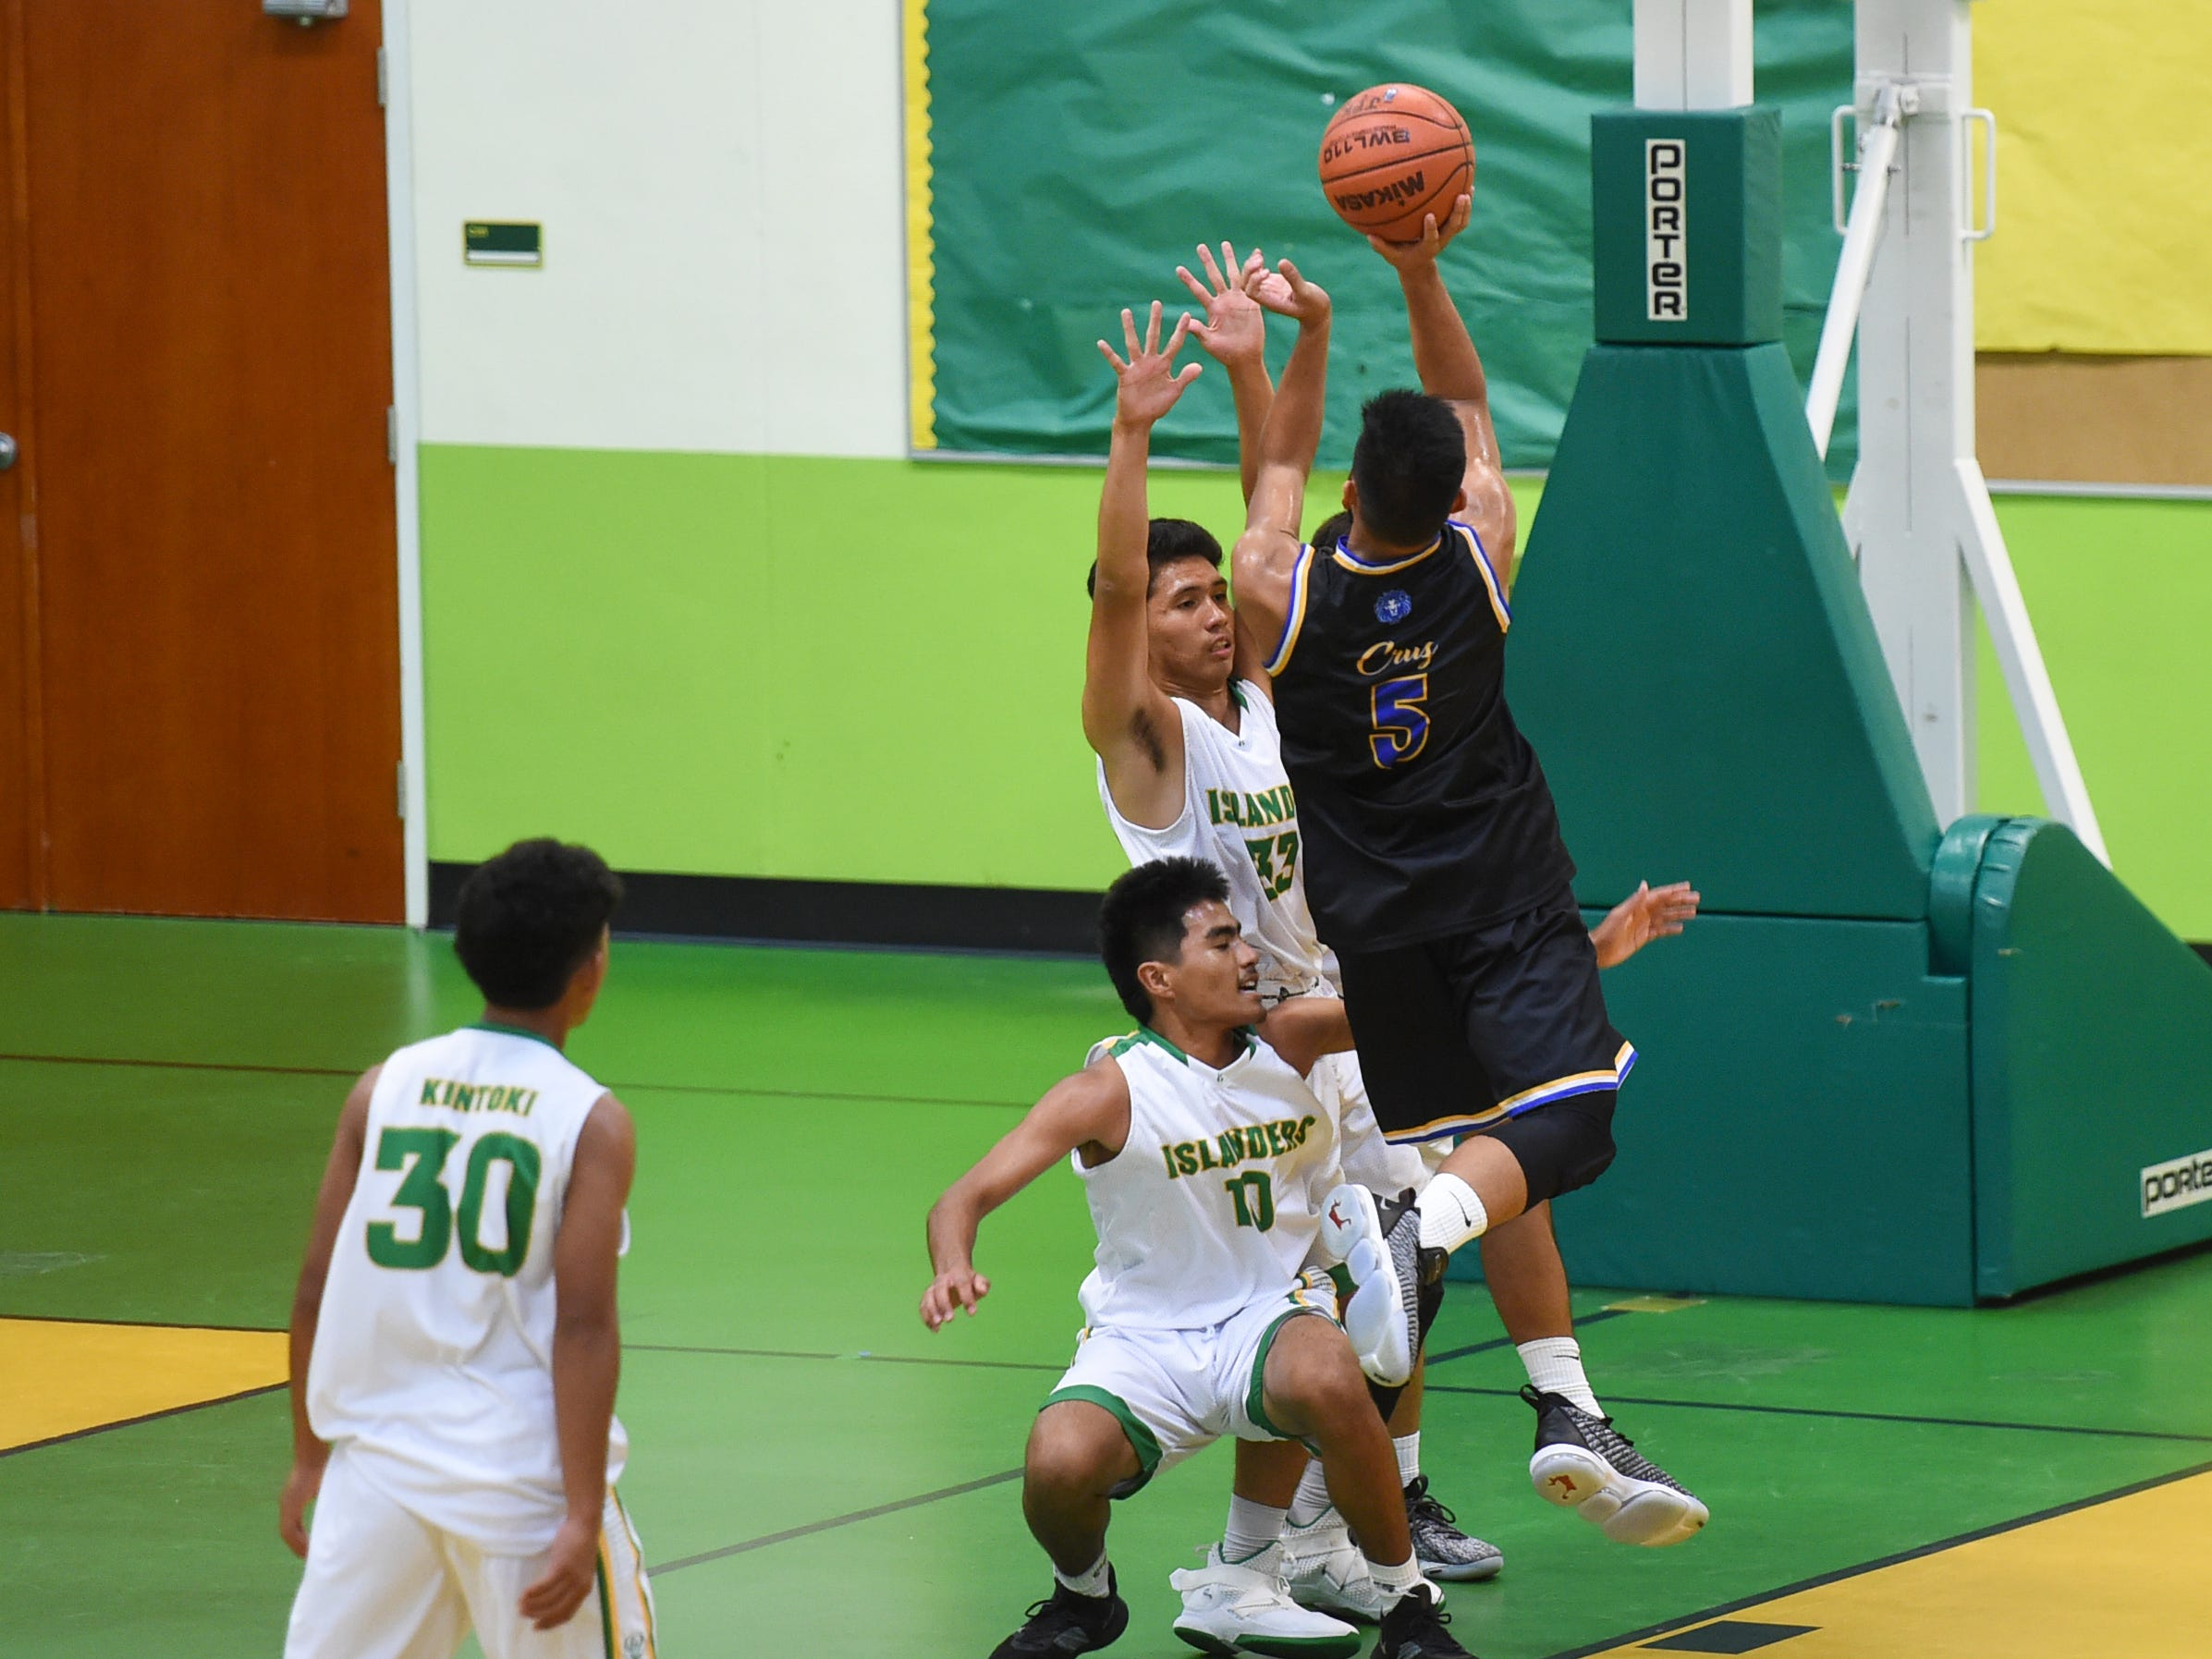 Notre Dame player Peter Cruz (5) is fouled on a drive by the John F. Kennedy Islanders during their Independent Interscholastic Athletic Association of Guam Boys' Basketball game at the JFK High School Gym, Feb. 2, 2019.